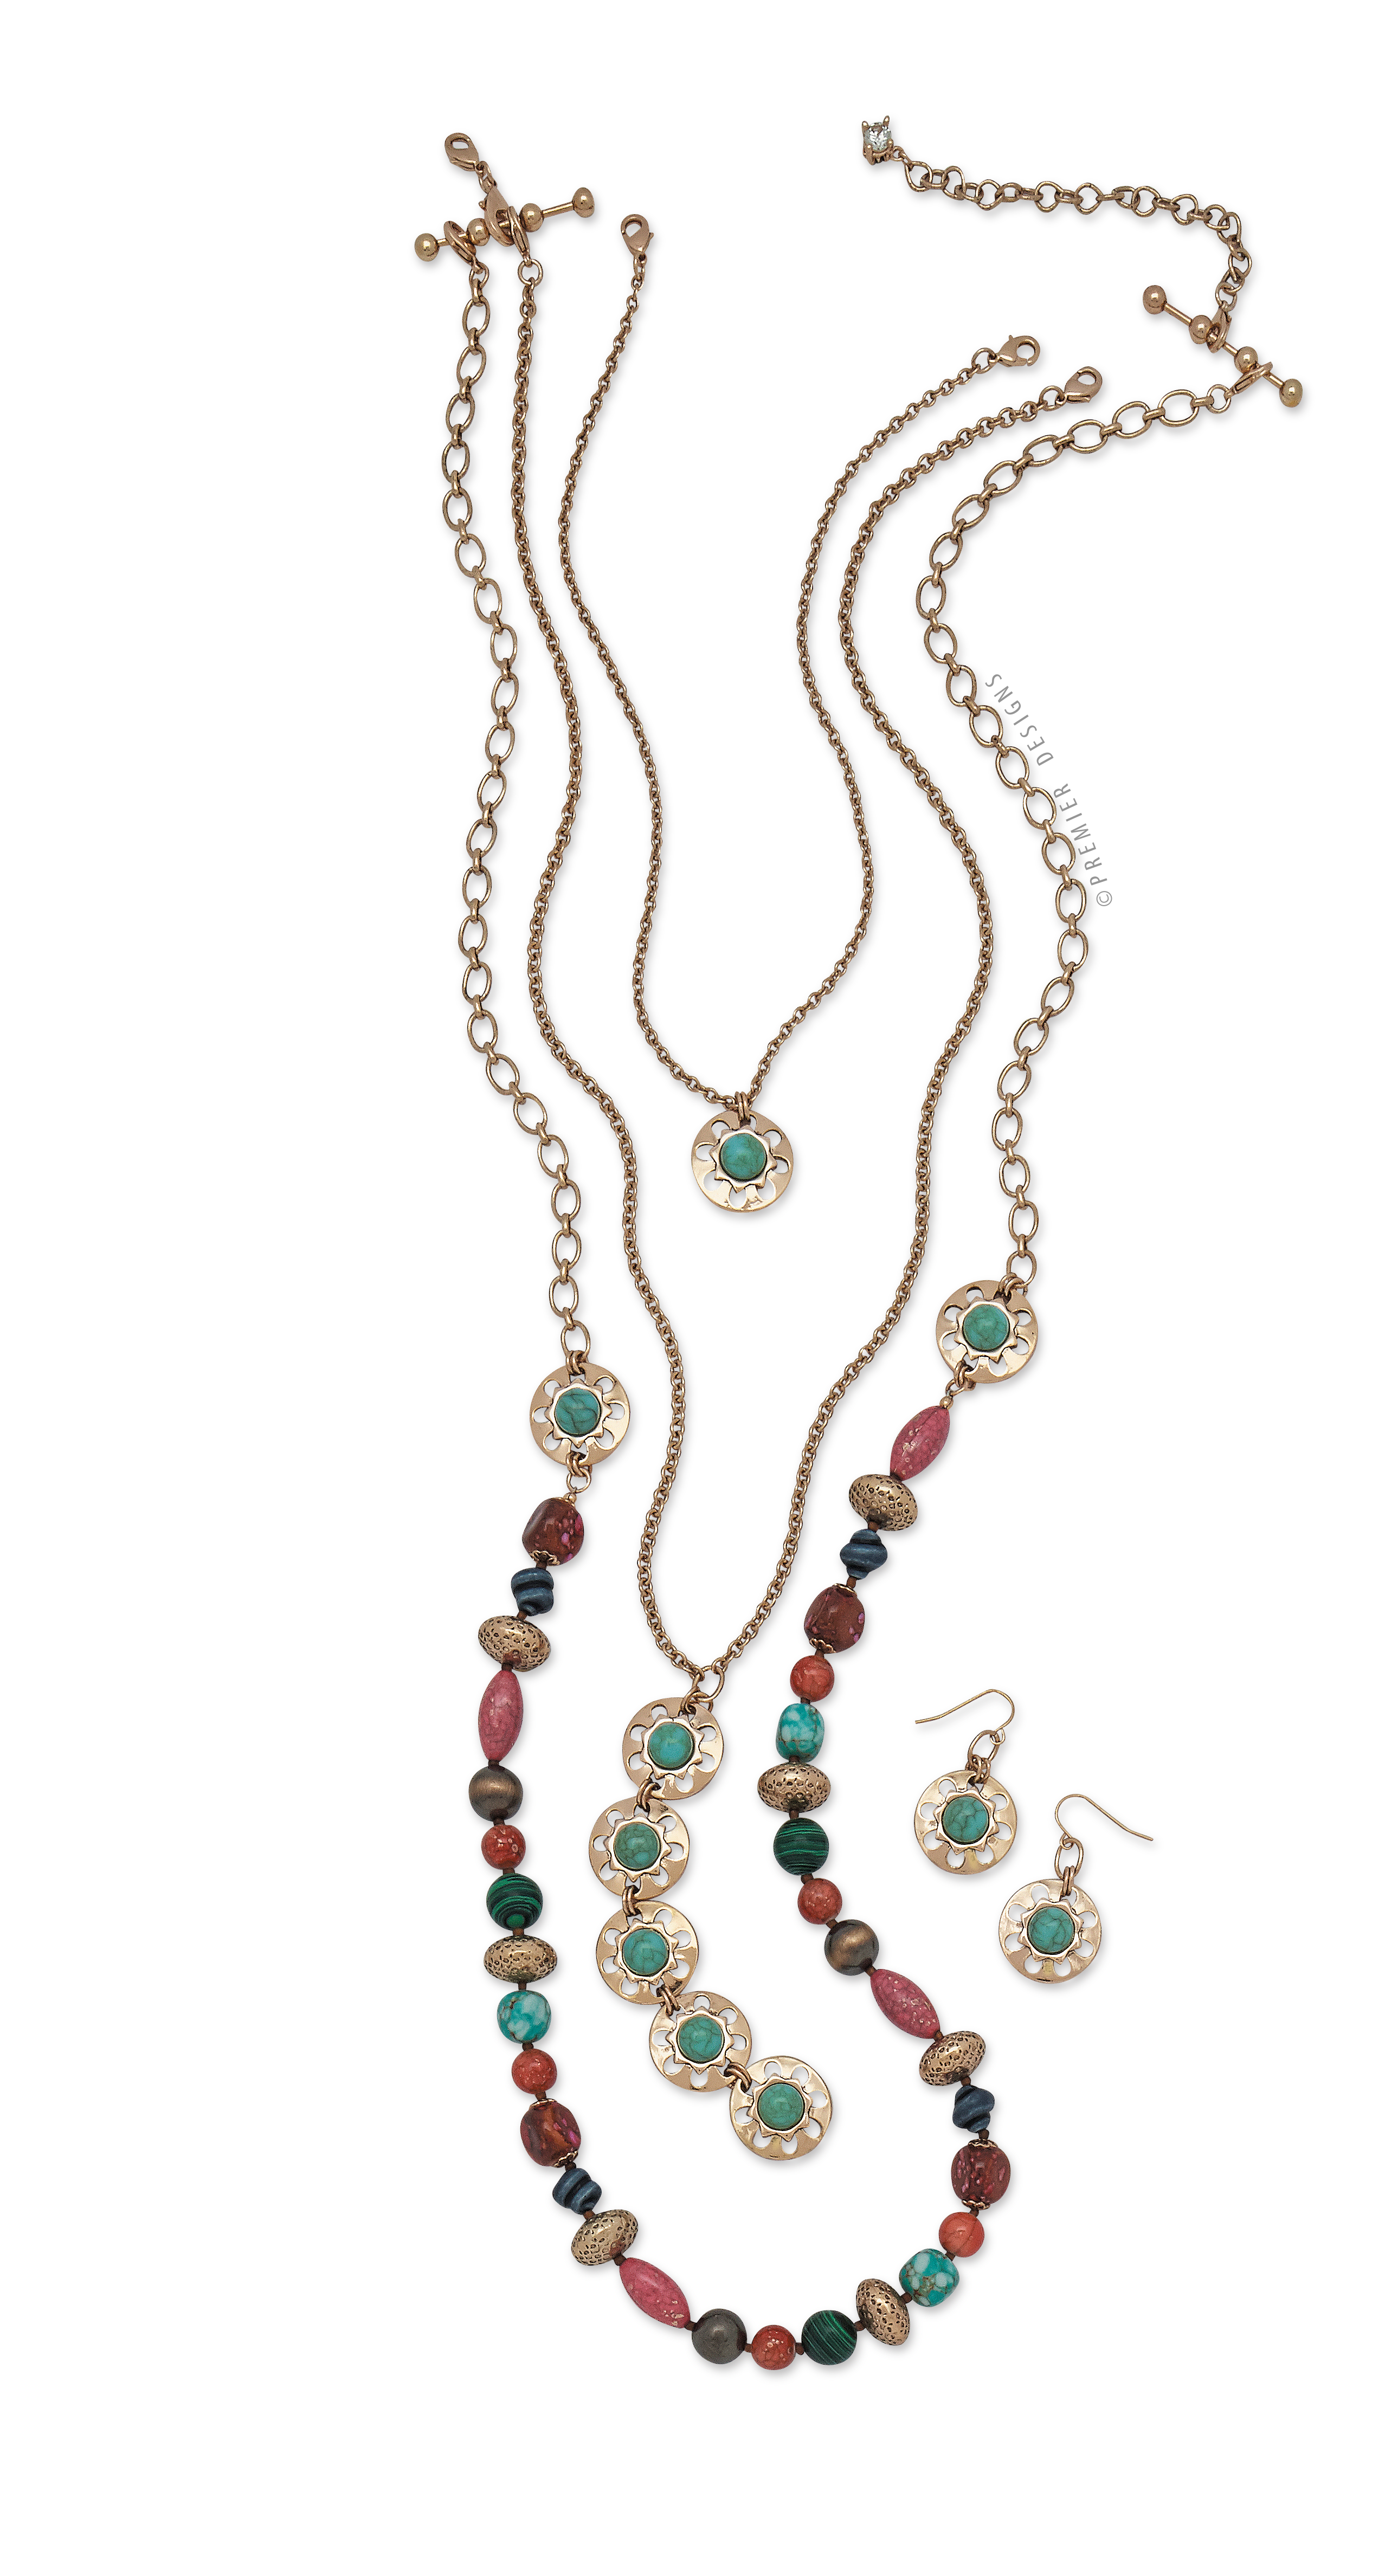 Premier Designs Swap It Out Necklace and Earrings